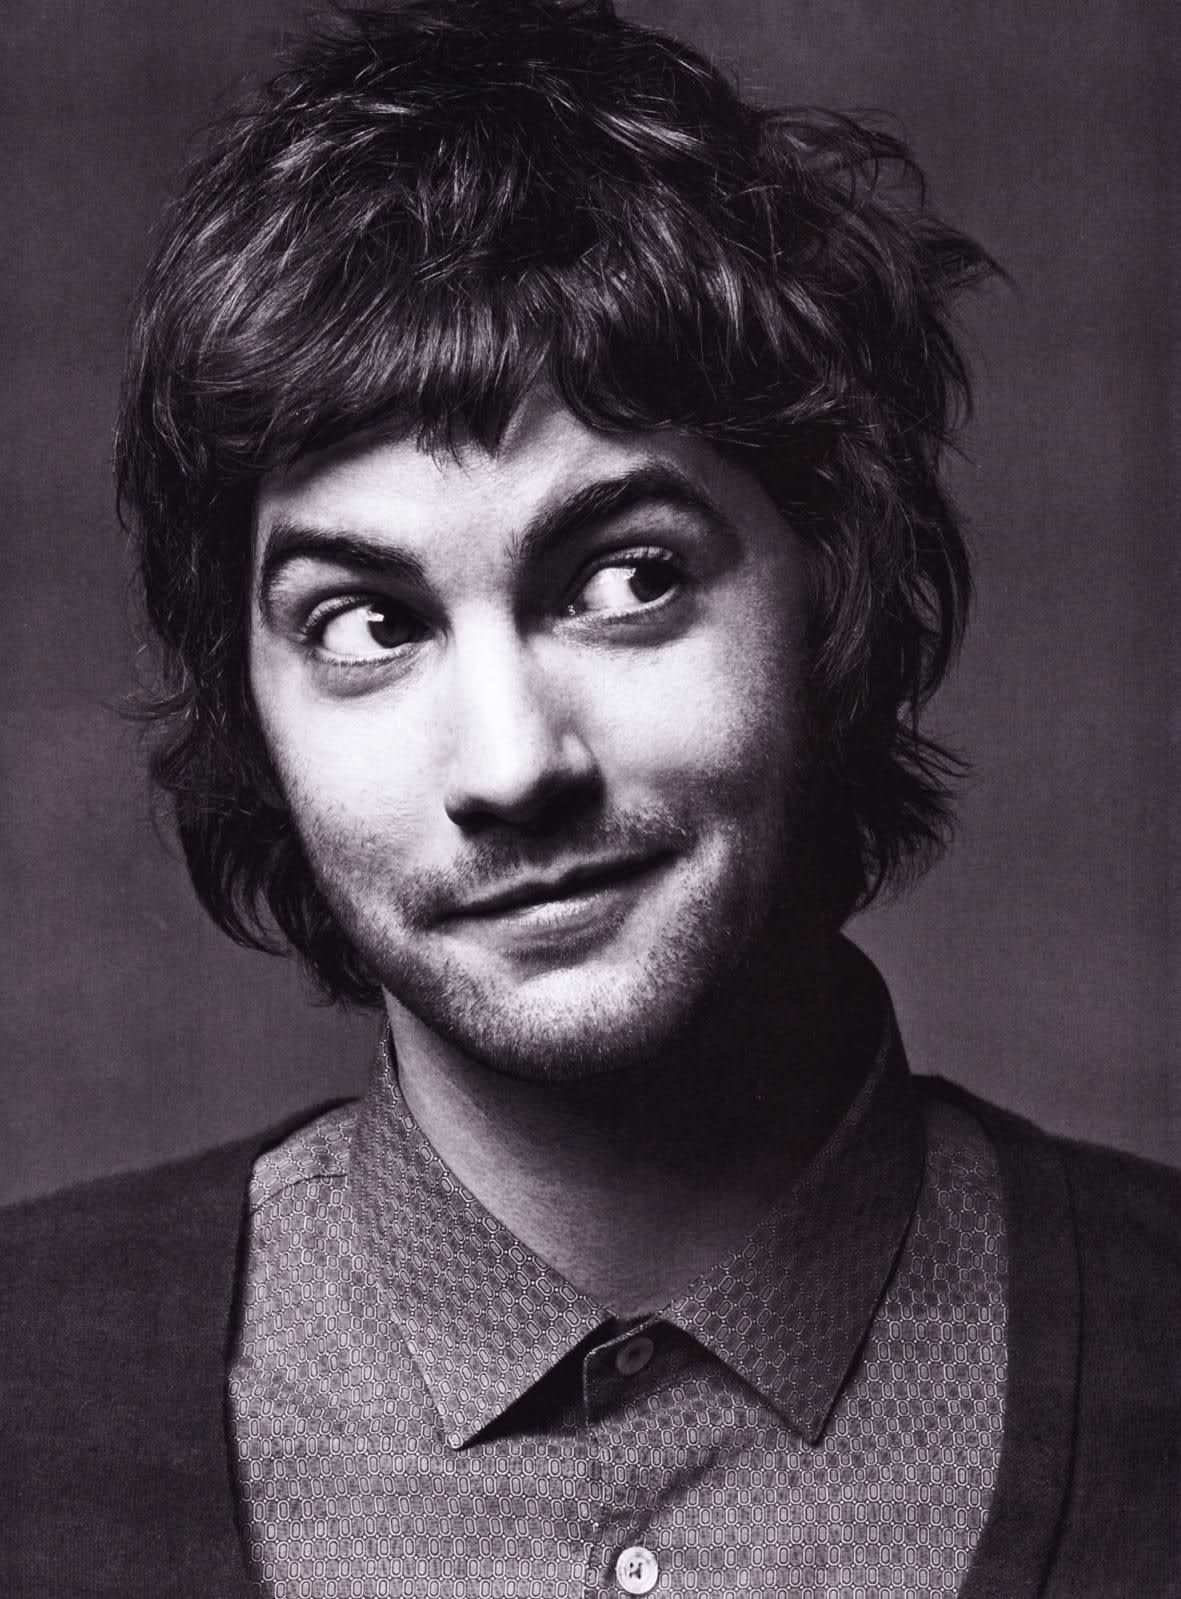 jim sturgess photosjim sturgess личная жизнь, jim sturgess tumblr, jim sturgess online, jim sturgess gif, jim sturgess 2016, jim sturgess vk, jim sturgess фильмография, jim sturgess movies, jim sturgess height, jim sturgess 2017, jim sturgess instagram, jim sturgess 21, jim sturgess and doona bae, jim sturgess mistake the enemy, jim sturgess photos, jim sturgess and joe anderson, jim sturgess heartless, jim sturgess songs, jim sturgess strawberry fields forever, jim sturgess film